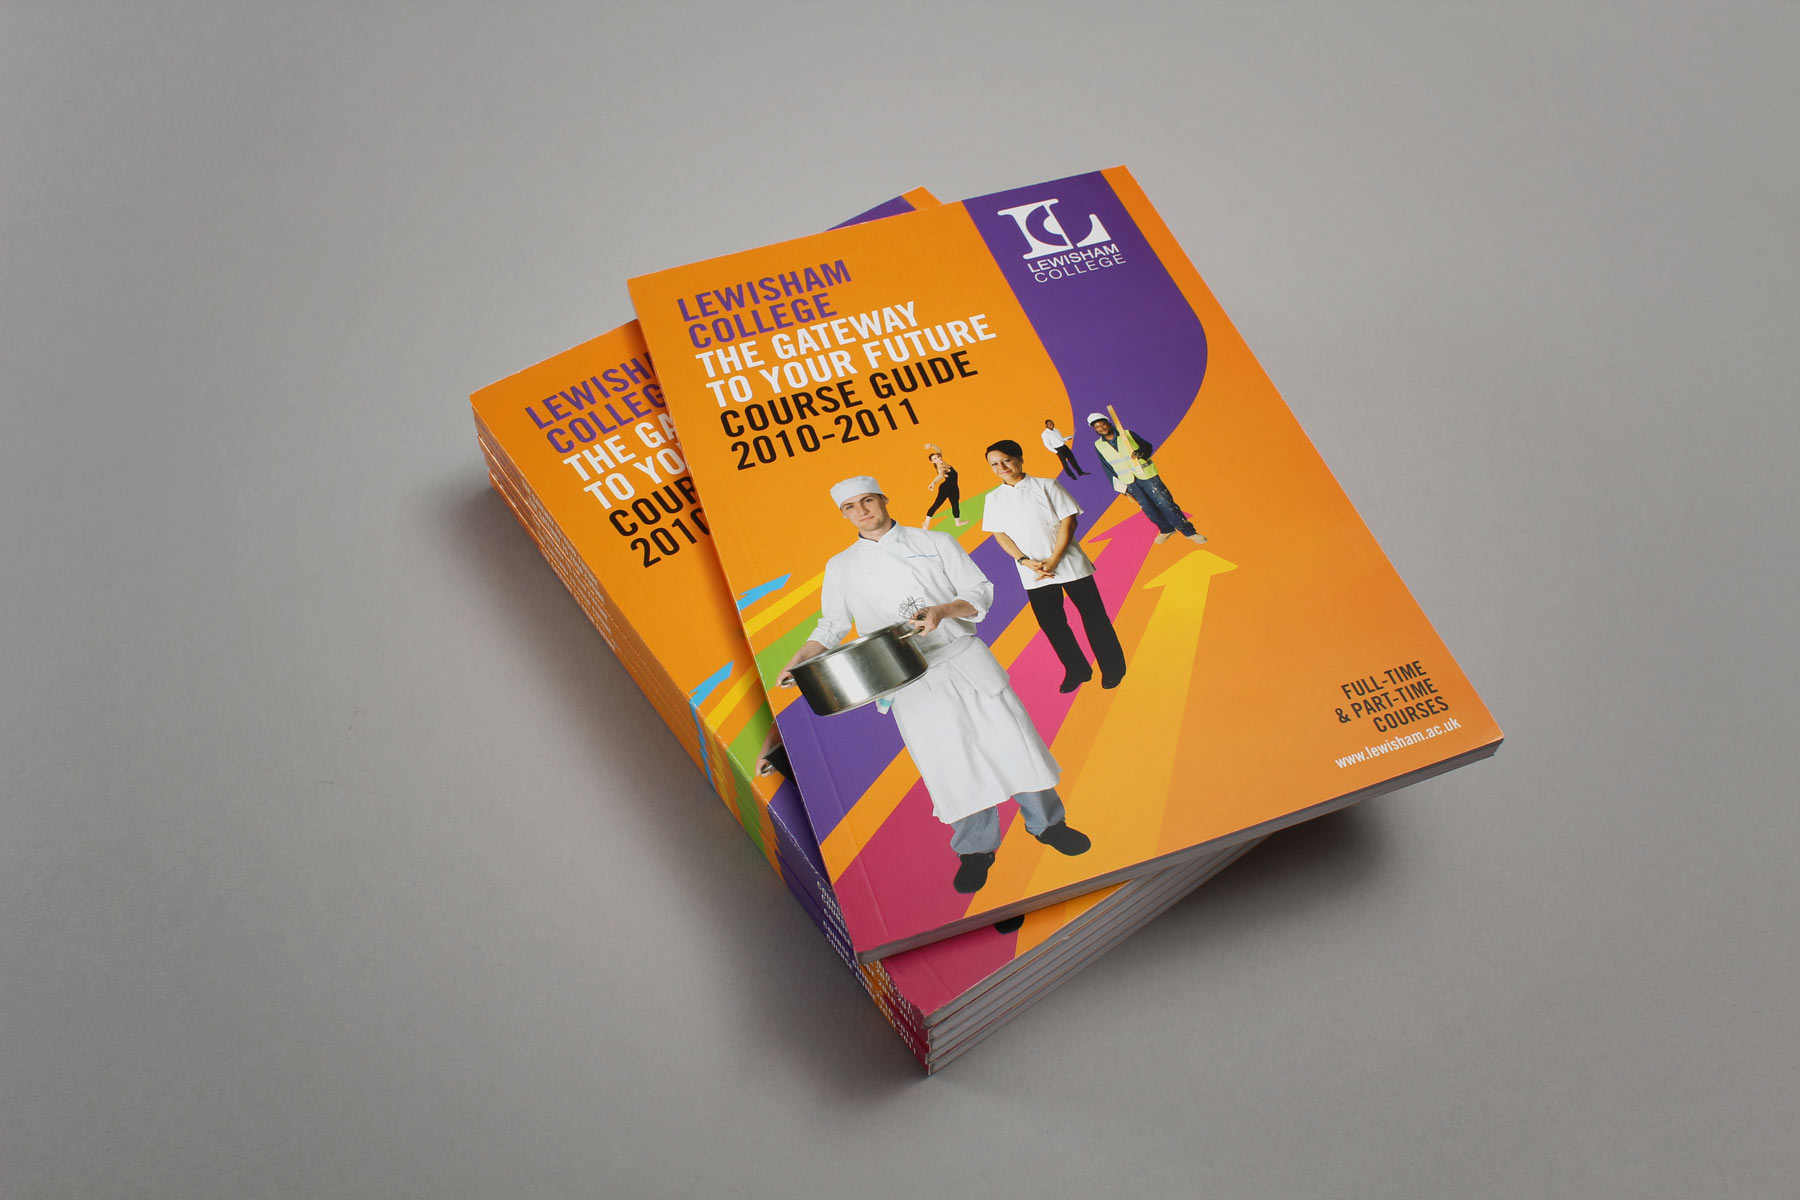 The course guide forms a natural extension to the Lewisham brand identity, also completed by Firedog.